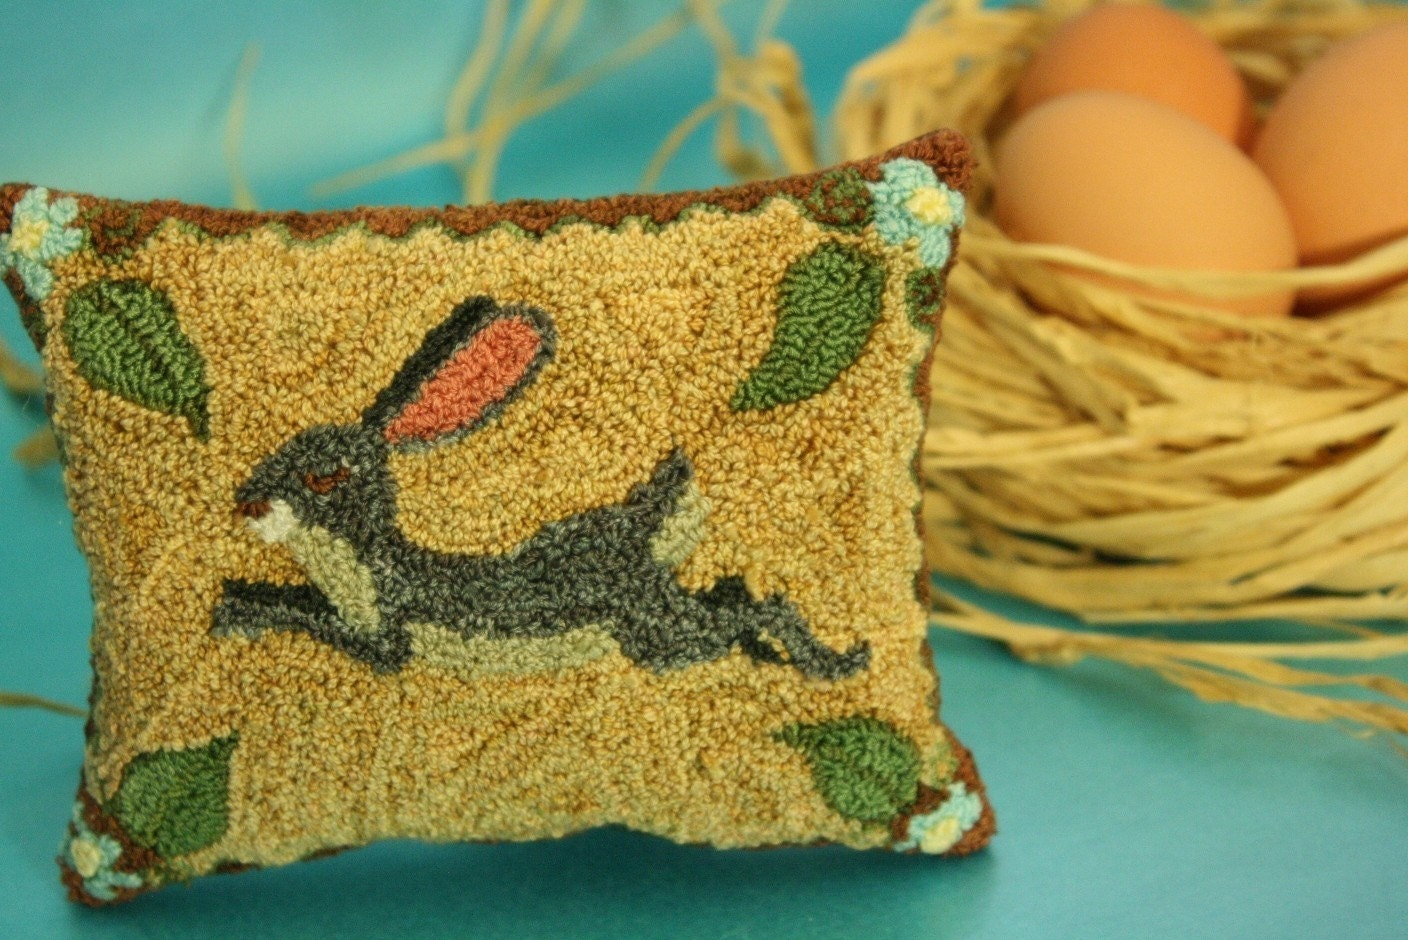 Primitive Folk Art Rabbit Sachet - Lavender Sachet